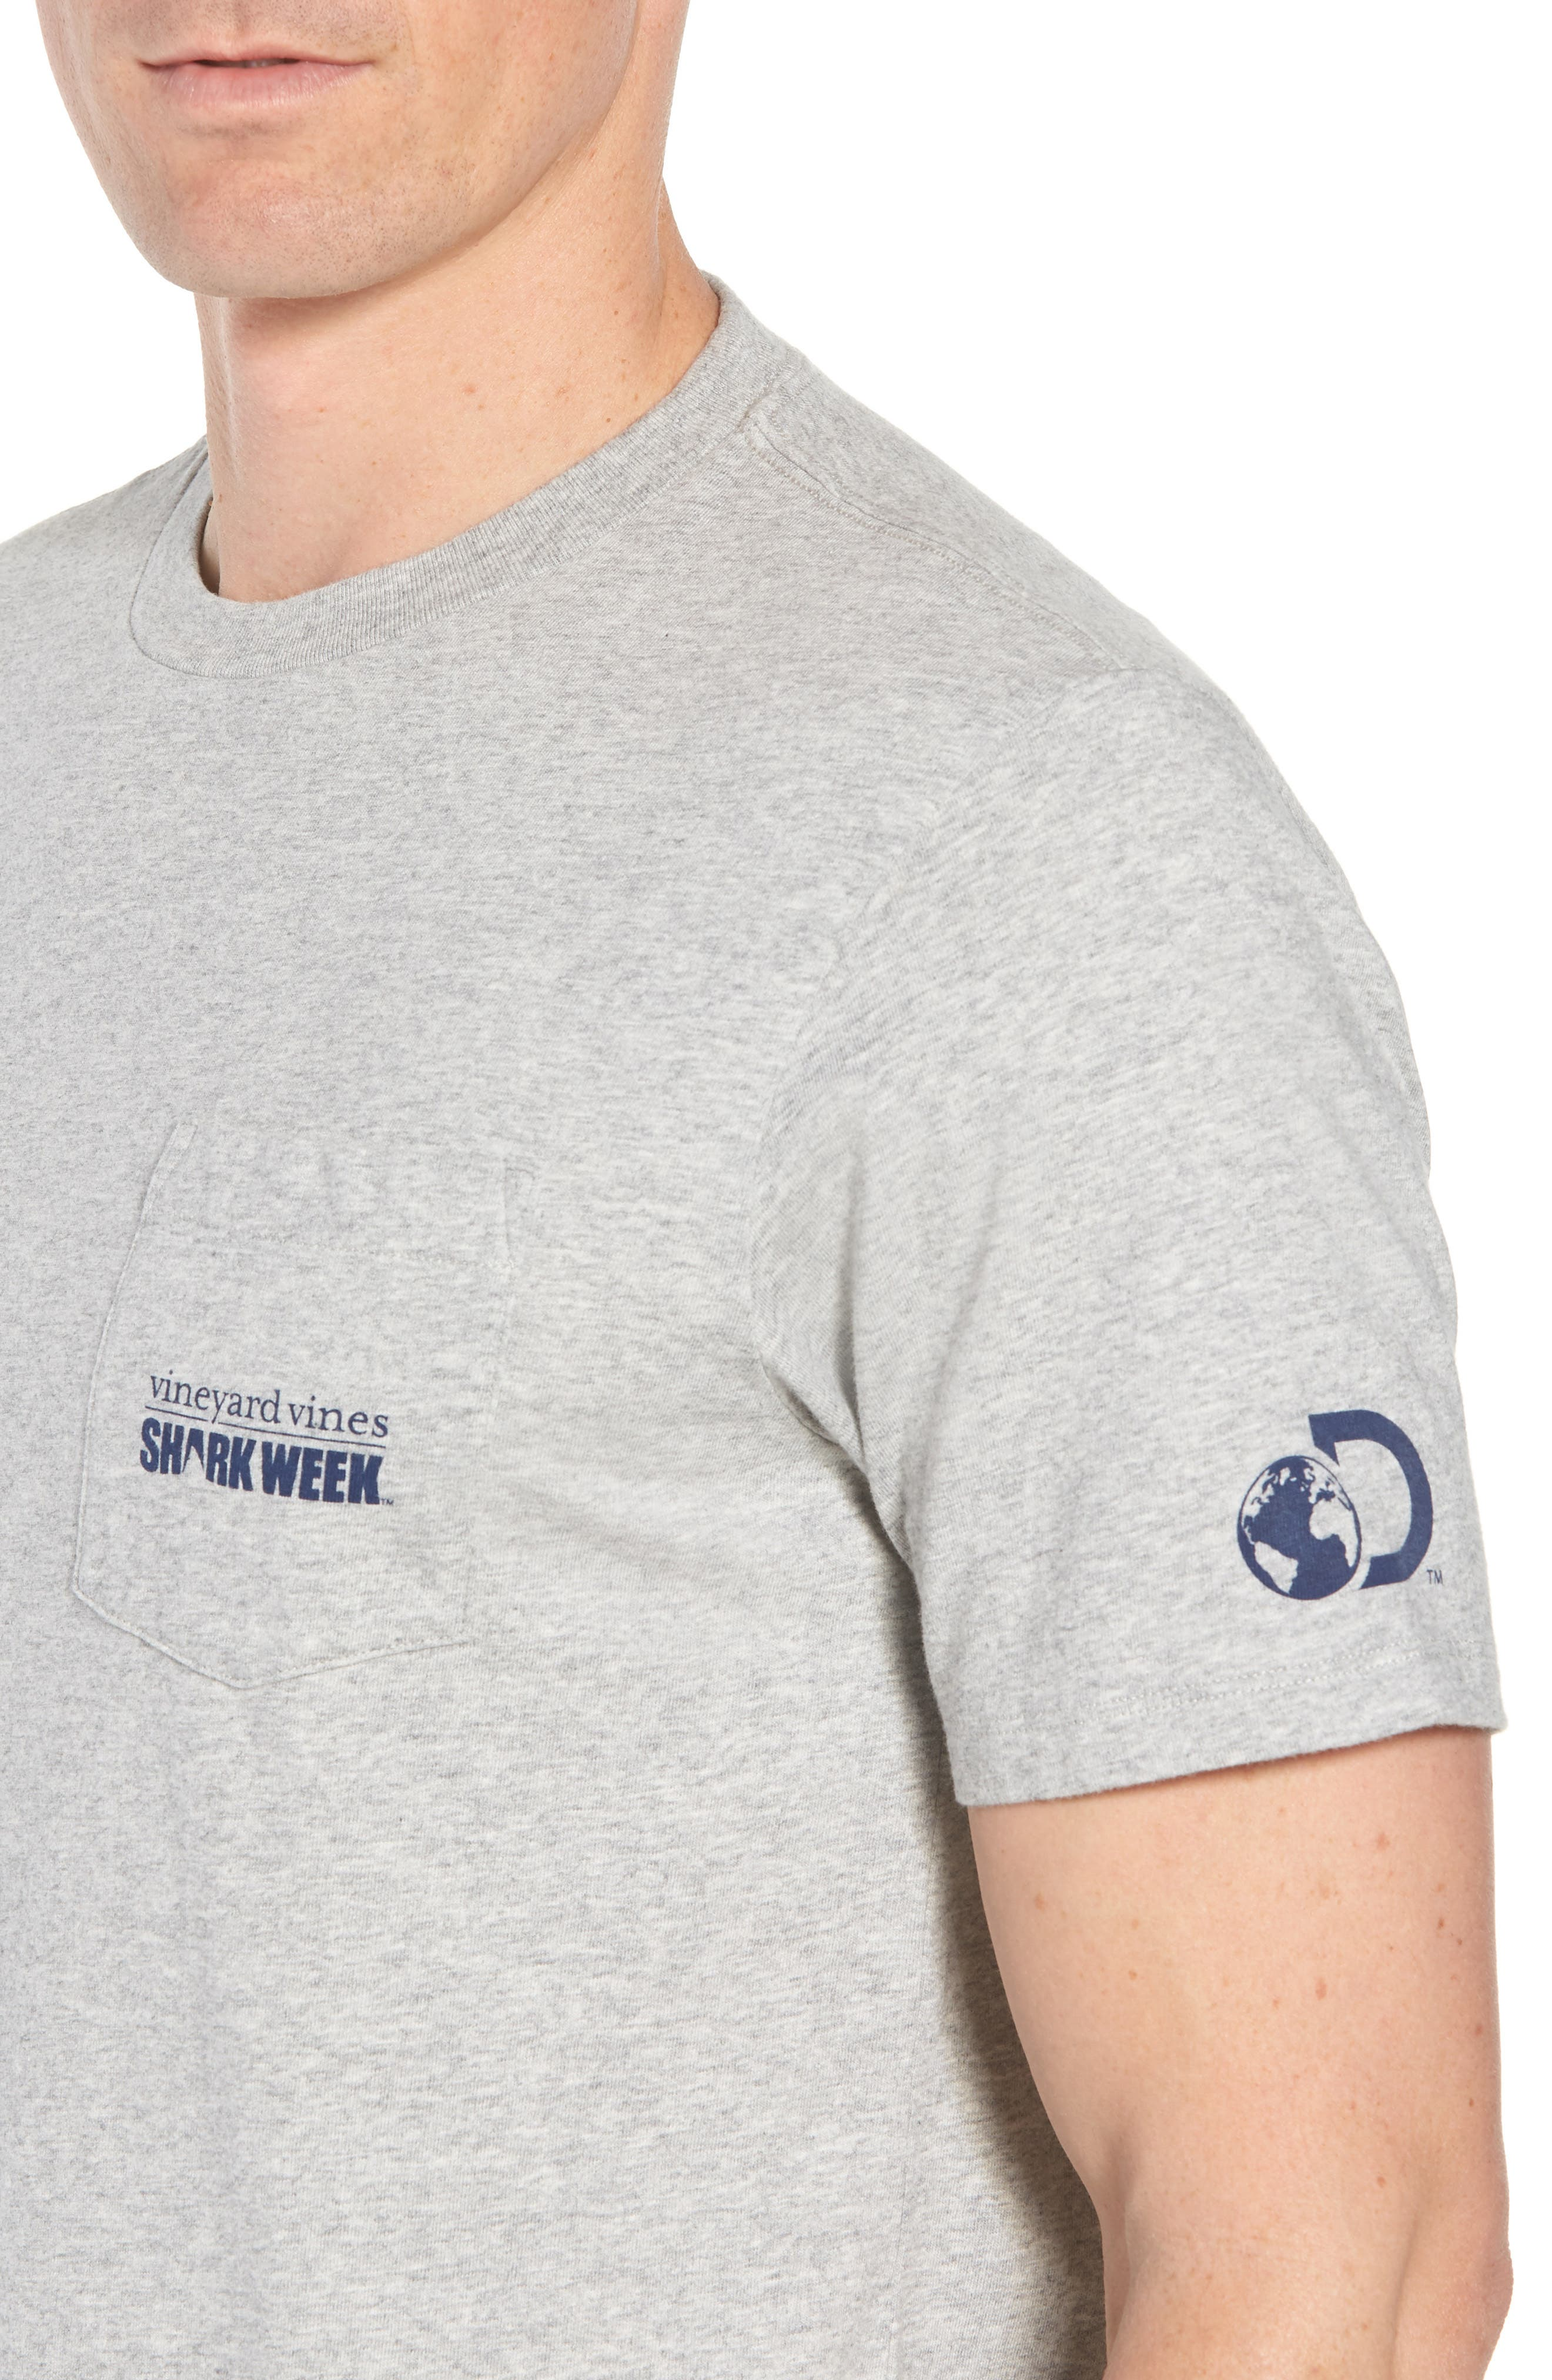 x Shark Week<sup>™</sup> Sharks & Stripes Pocket T-Shirt,                             Alternate thumbnail 4, color,                             039